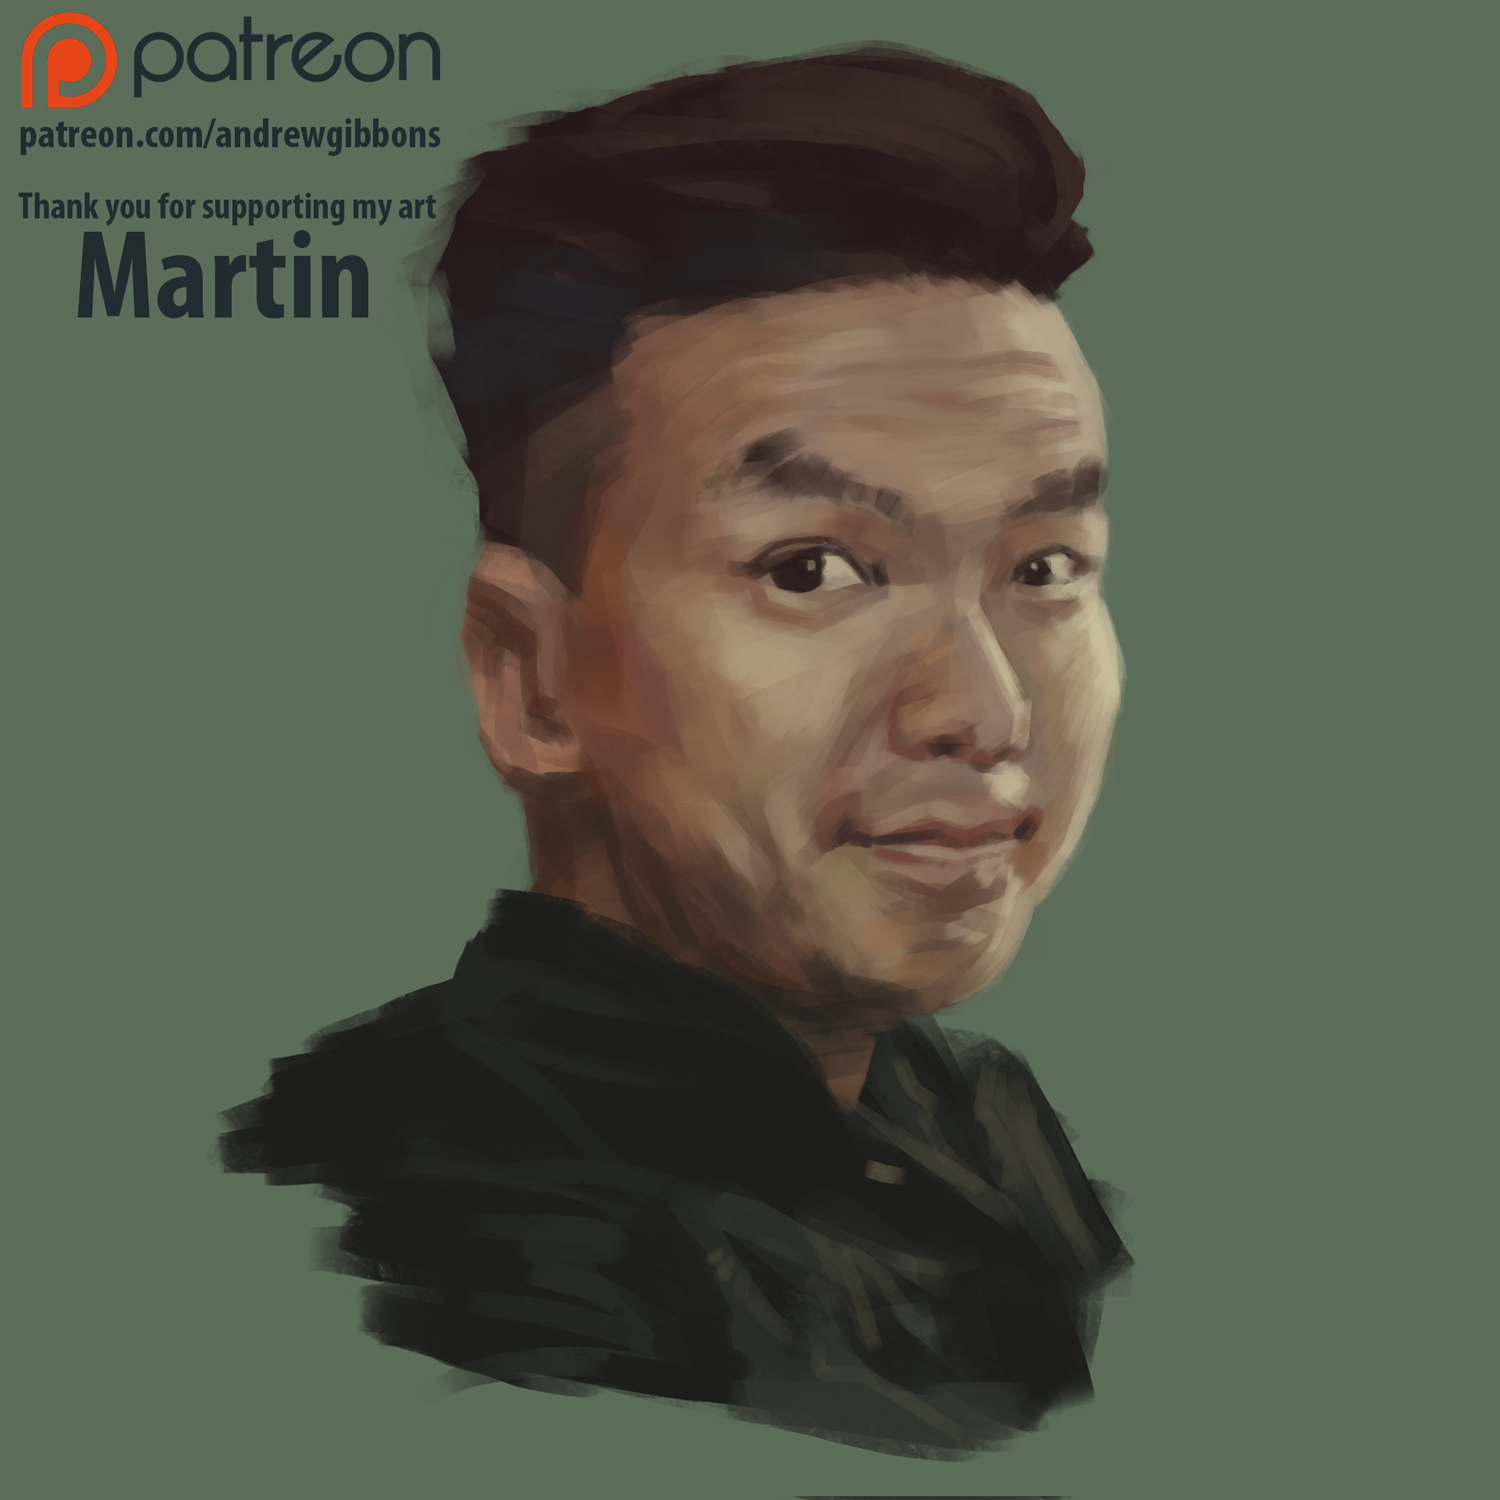 [Image: patron_portrait___martin_by_andrew_gibbons-dbh3ro7.jpg]